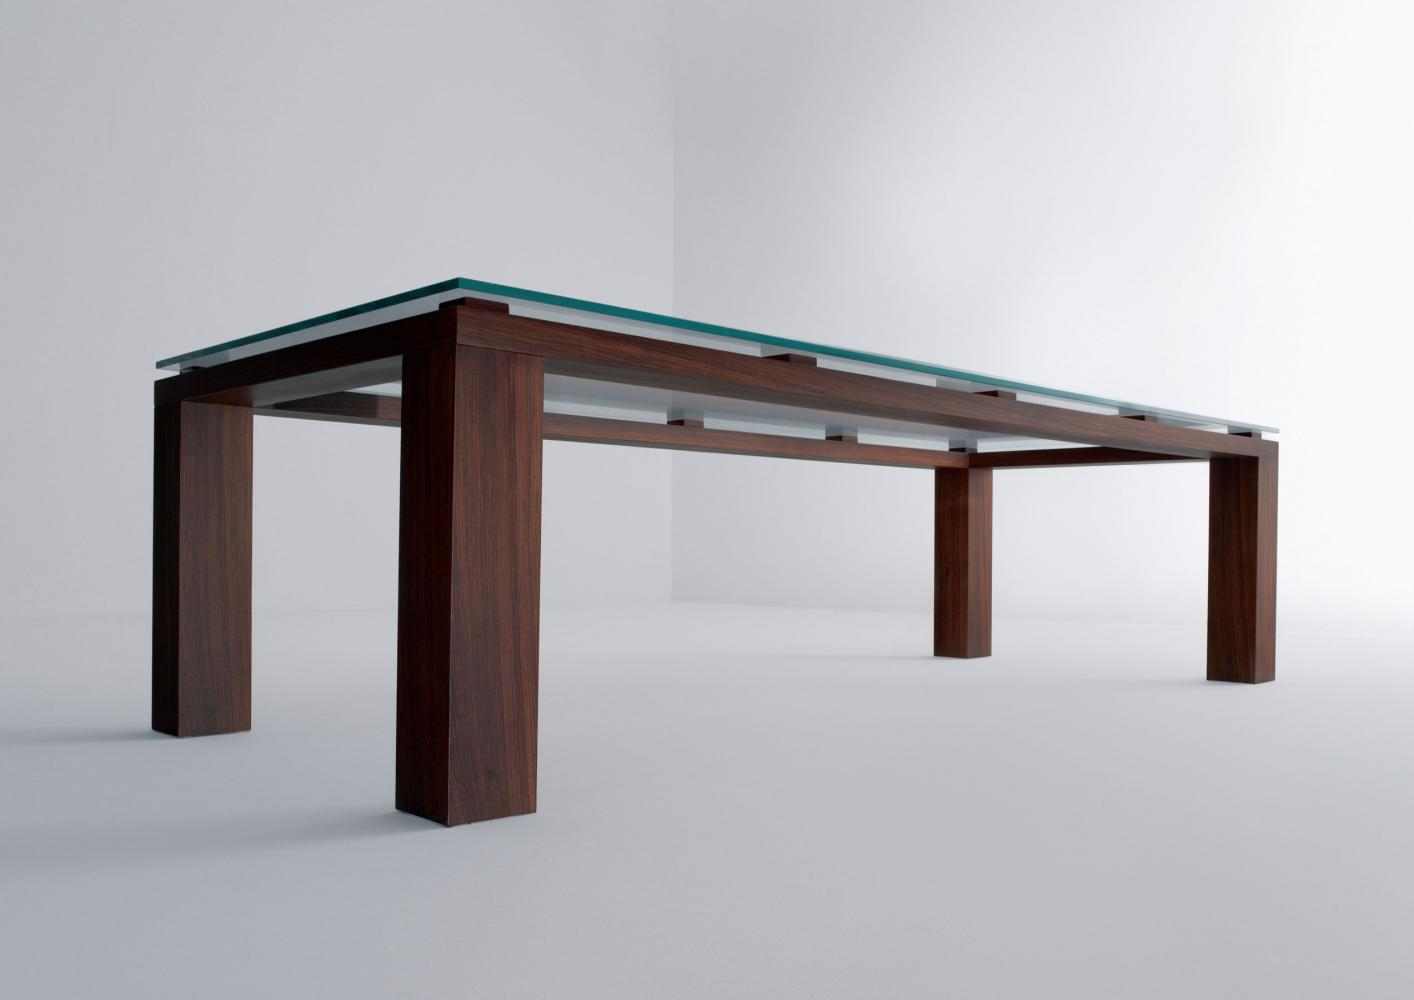 Modern custom made rectangular table in glass and wood